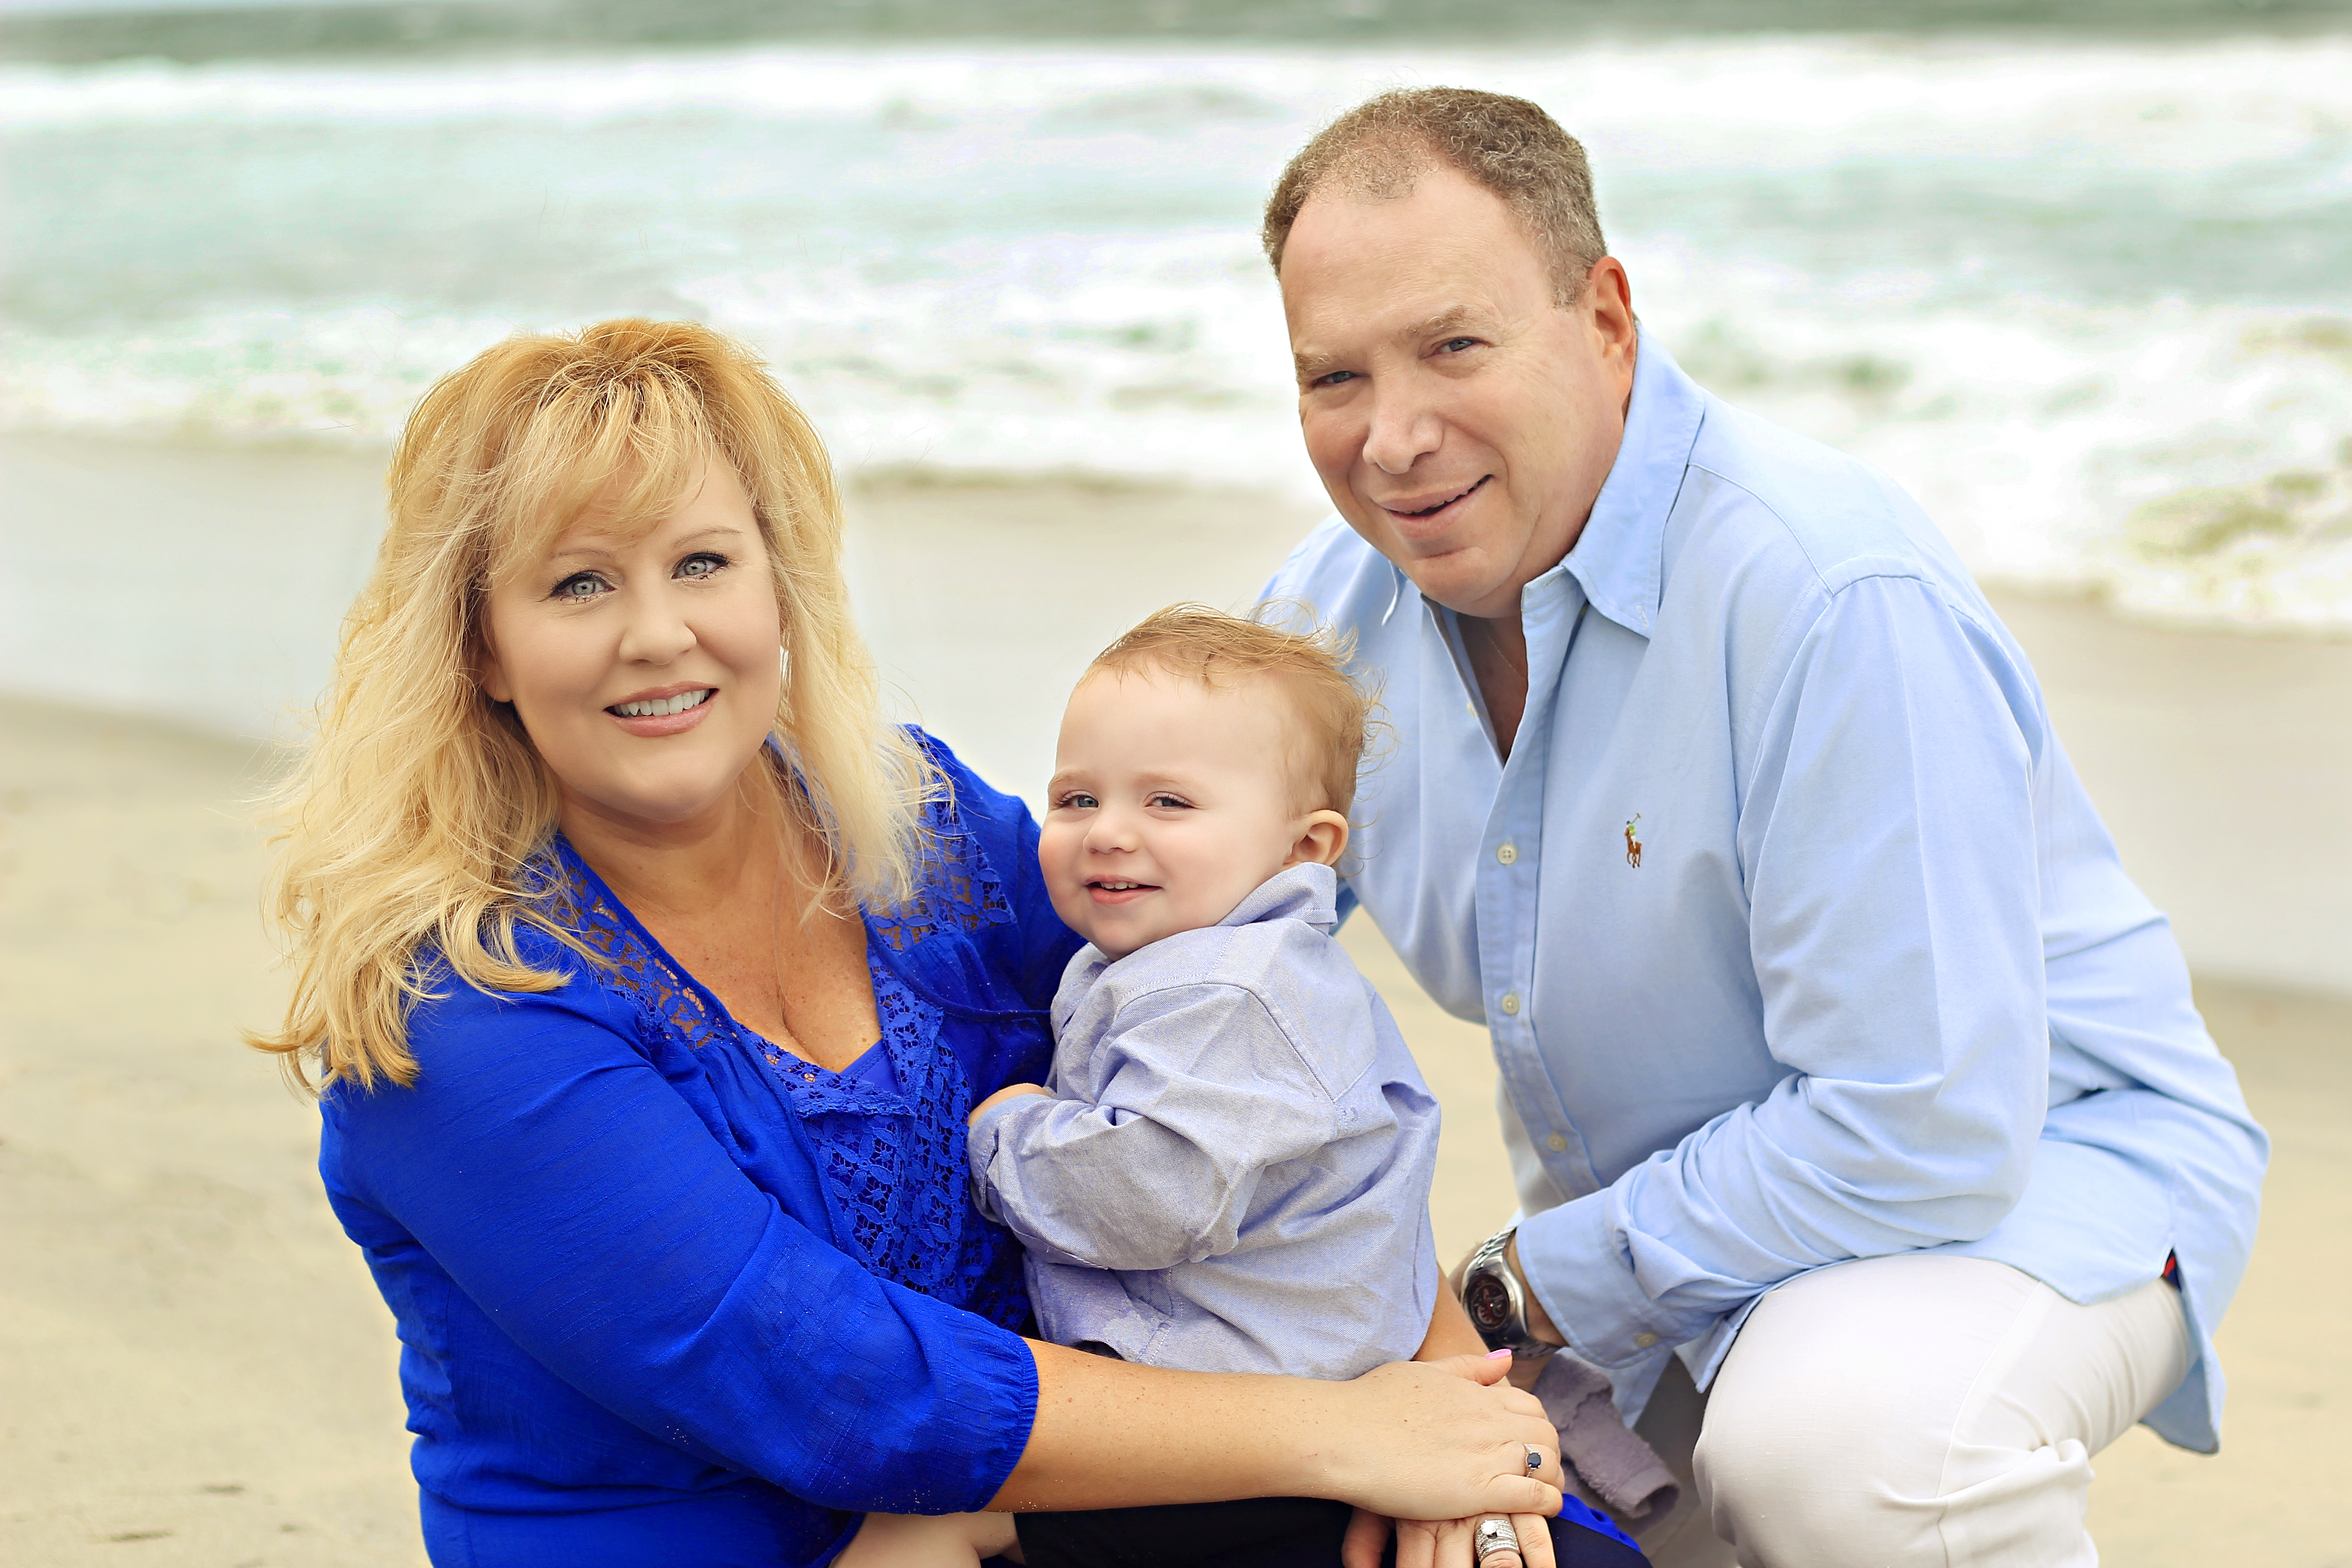 carlsbad family photographer san diego family photography (3).jpg